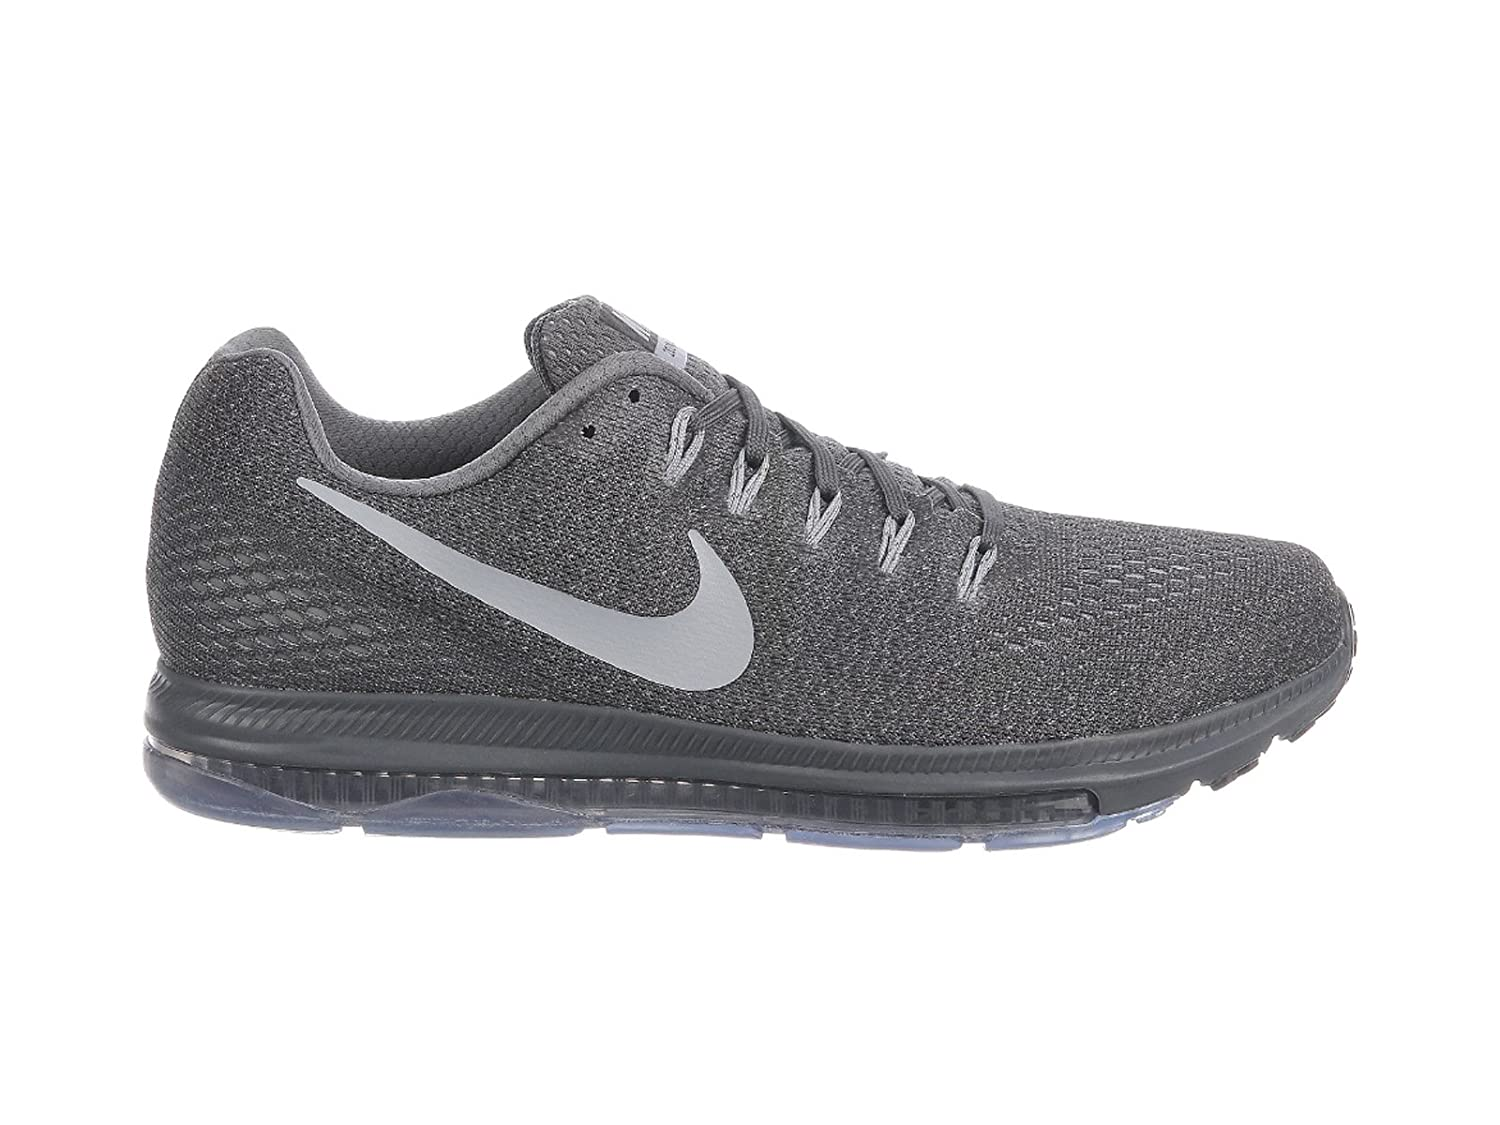 580668a89c32 Nike Mens Zoom All Out Low Dark Grey Wolf Grey Pure Platinum Nylon Running  Shoes 7 D US  Amazon.ca  Shoes   Handbags